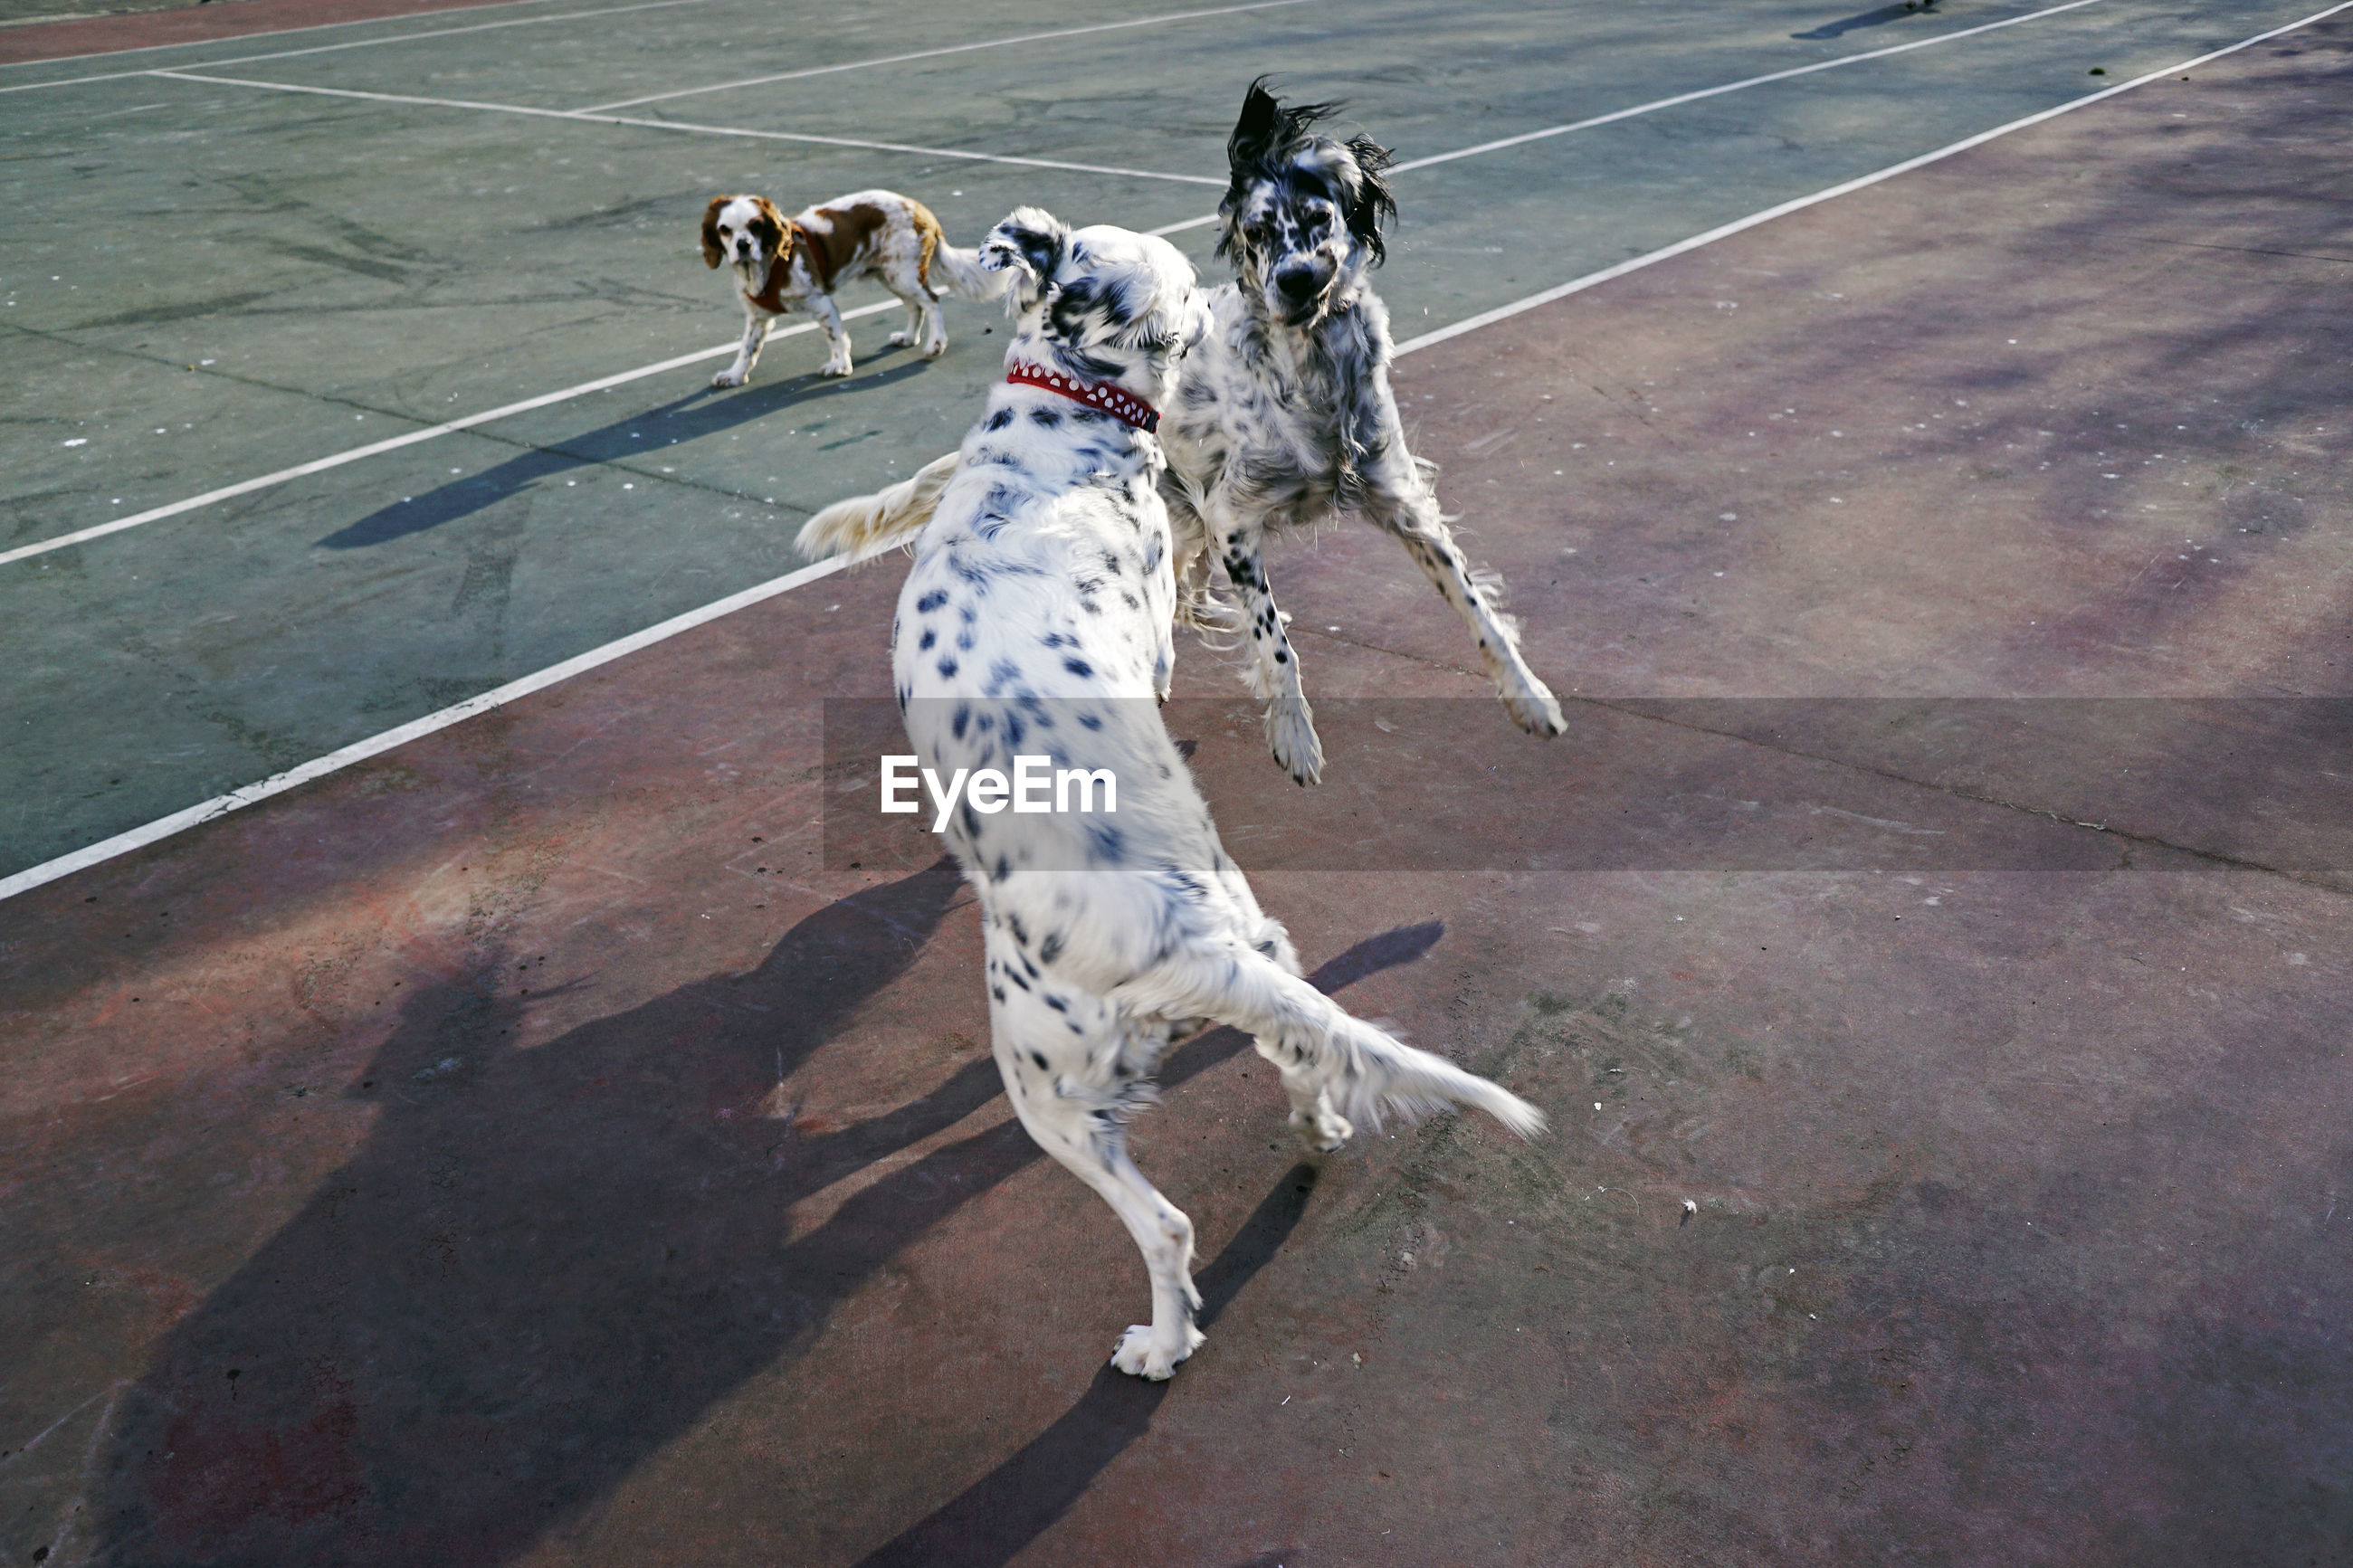 HIGH ANGLE VIEW OF DOG PLAYING ON THE ROAD